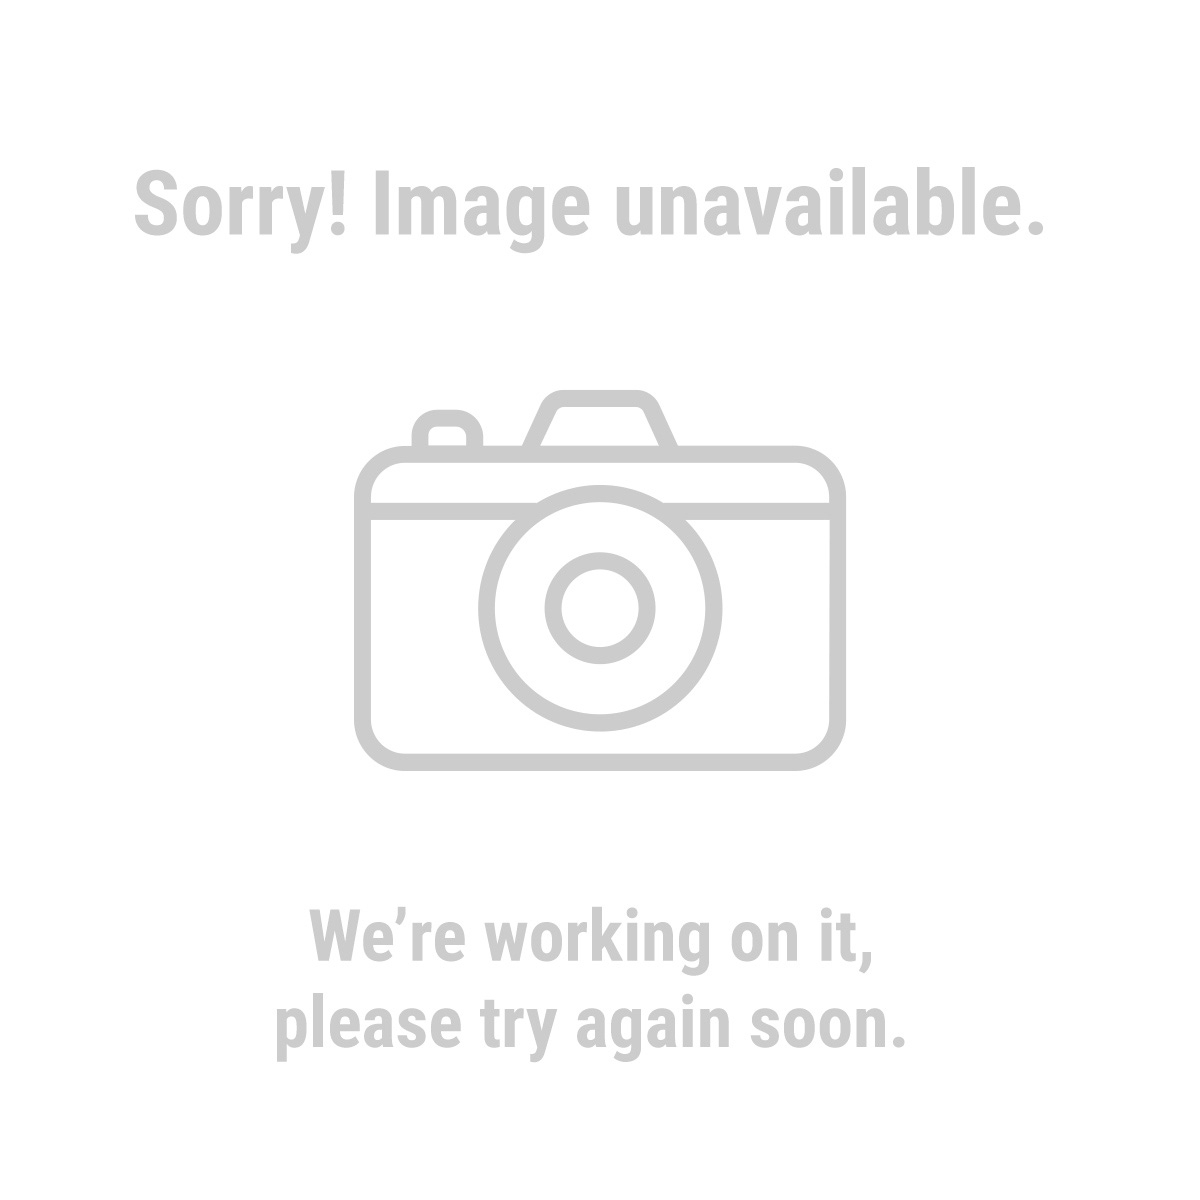 Is this HF Framing nailer decent? [Archive] - The Garage Journal Board